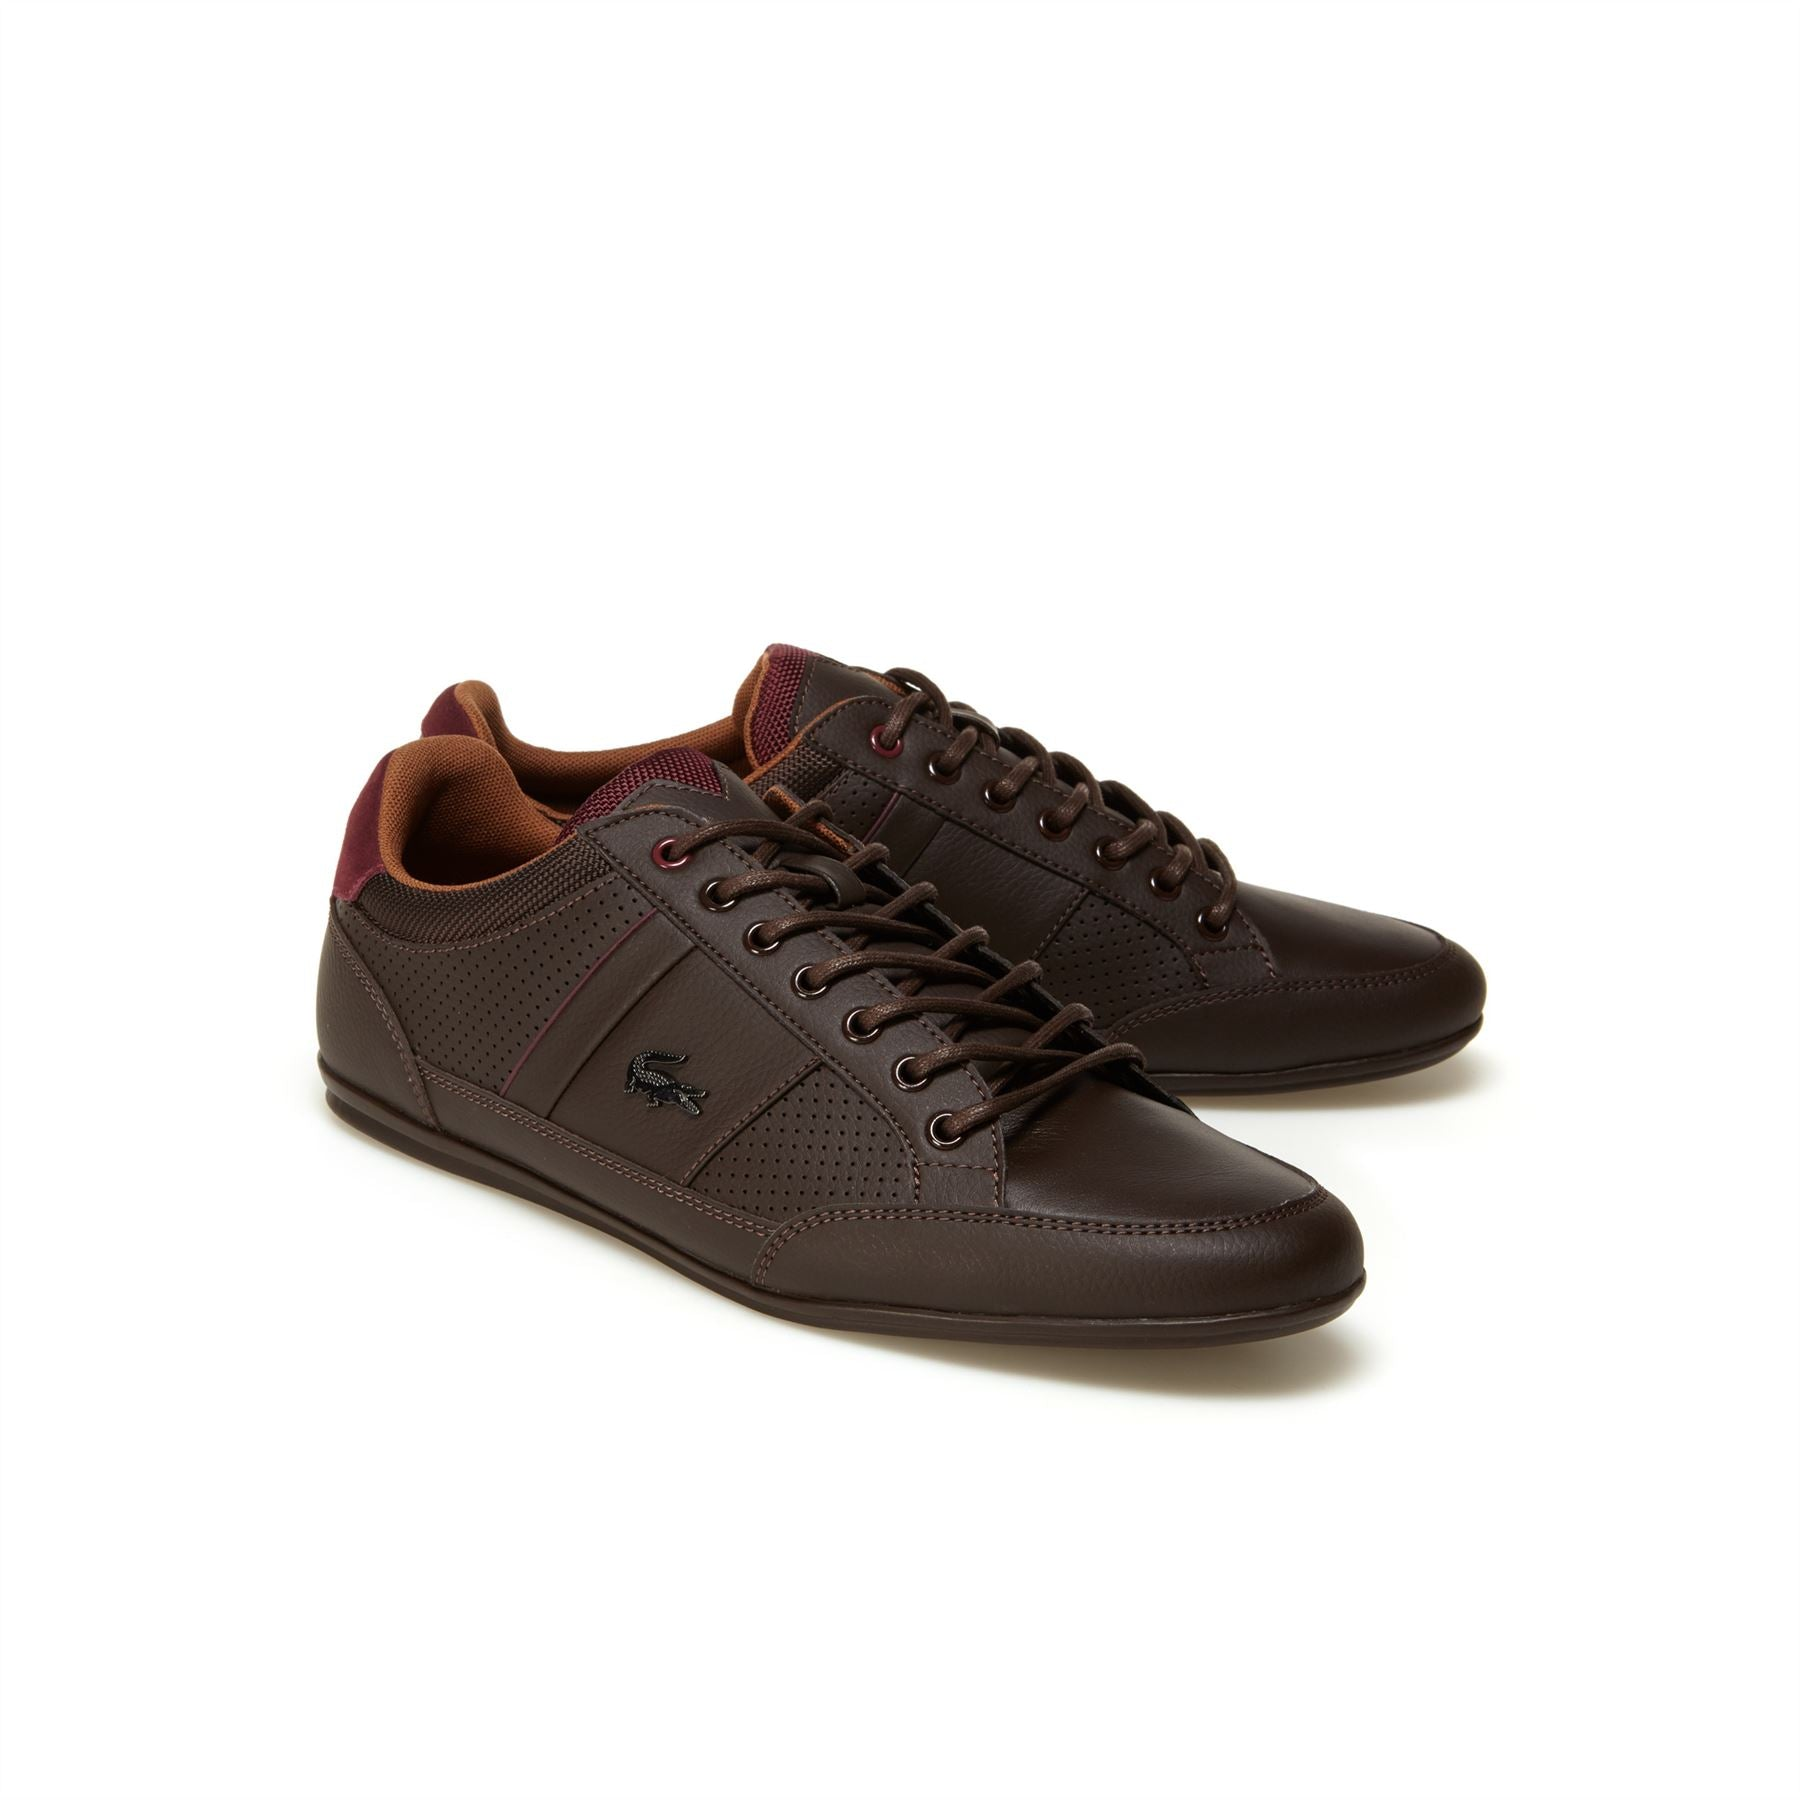 LACOSTE CHAYMON LEATHER BROWN/TAN TRAINERS